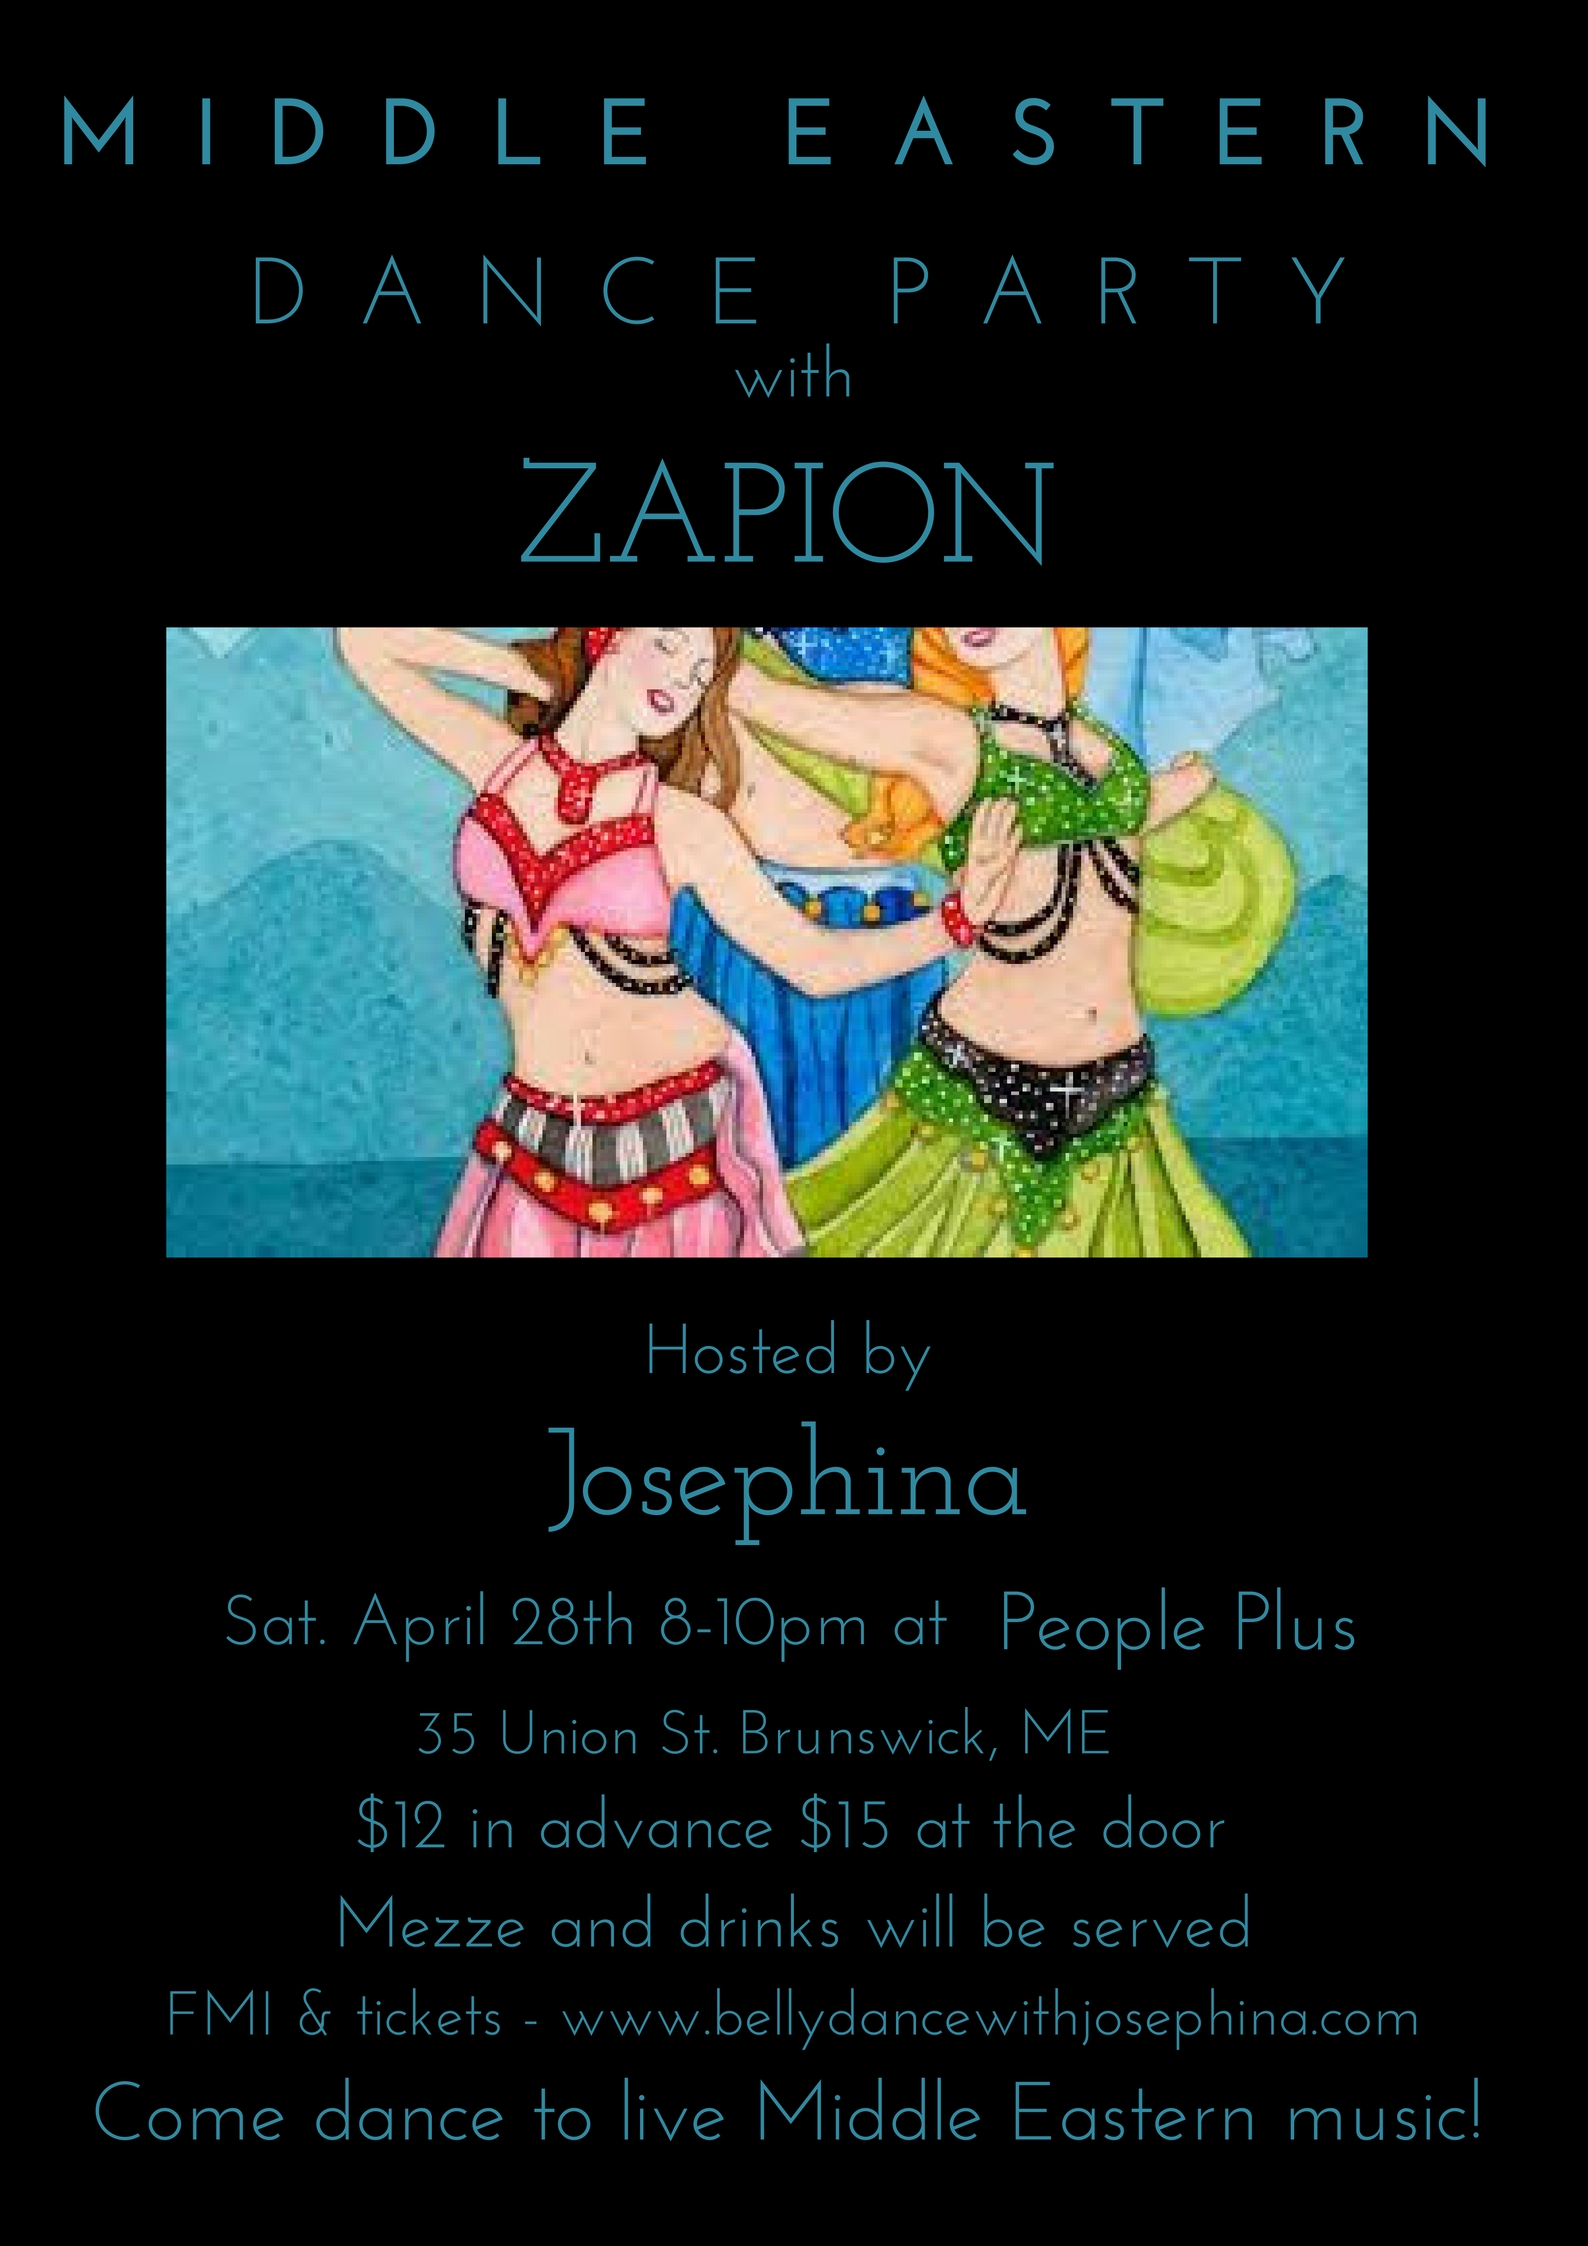 Doors open at 7:30pm  ---   To buy your tickets, go to  paypal.me/JosephinaGasca/12    ---                                                                                                   Check out  Zapion   If you have belly dance items to sell, there will be a table available.  Mark your items with your name and the asking price.